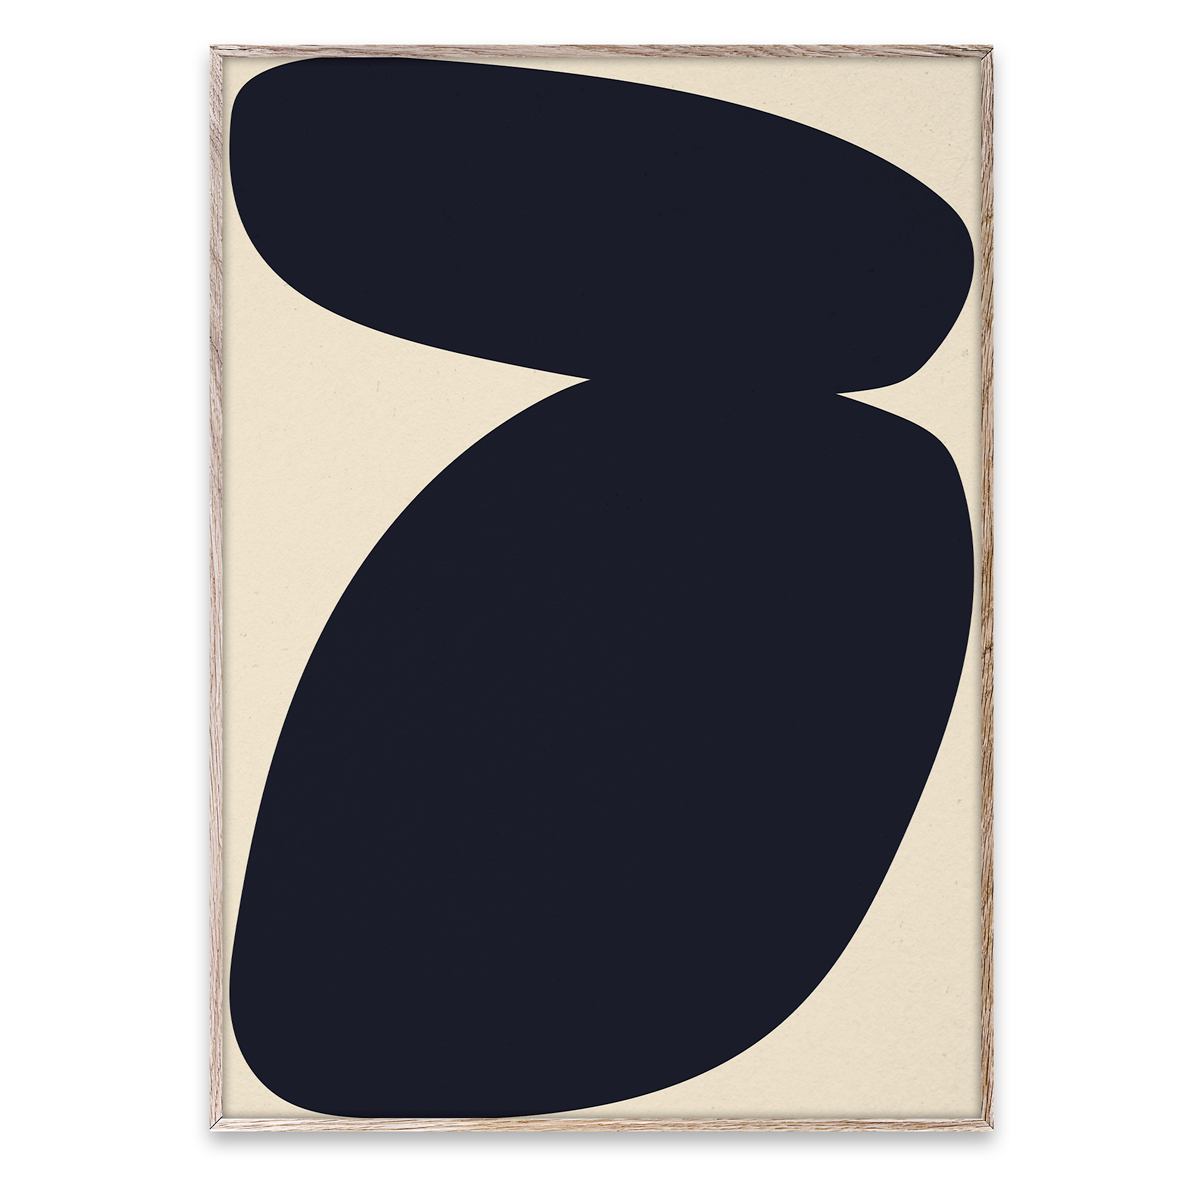 Paper Collective Wall Art Posters Solid Shapes 03 By Nina Bruun